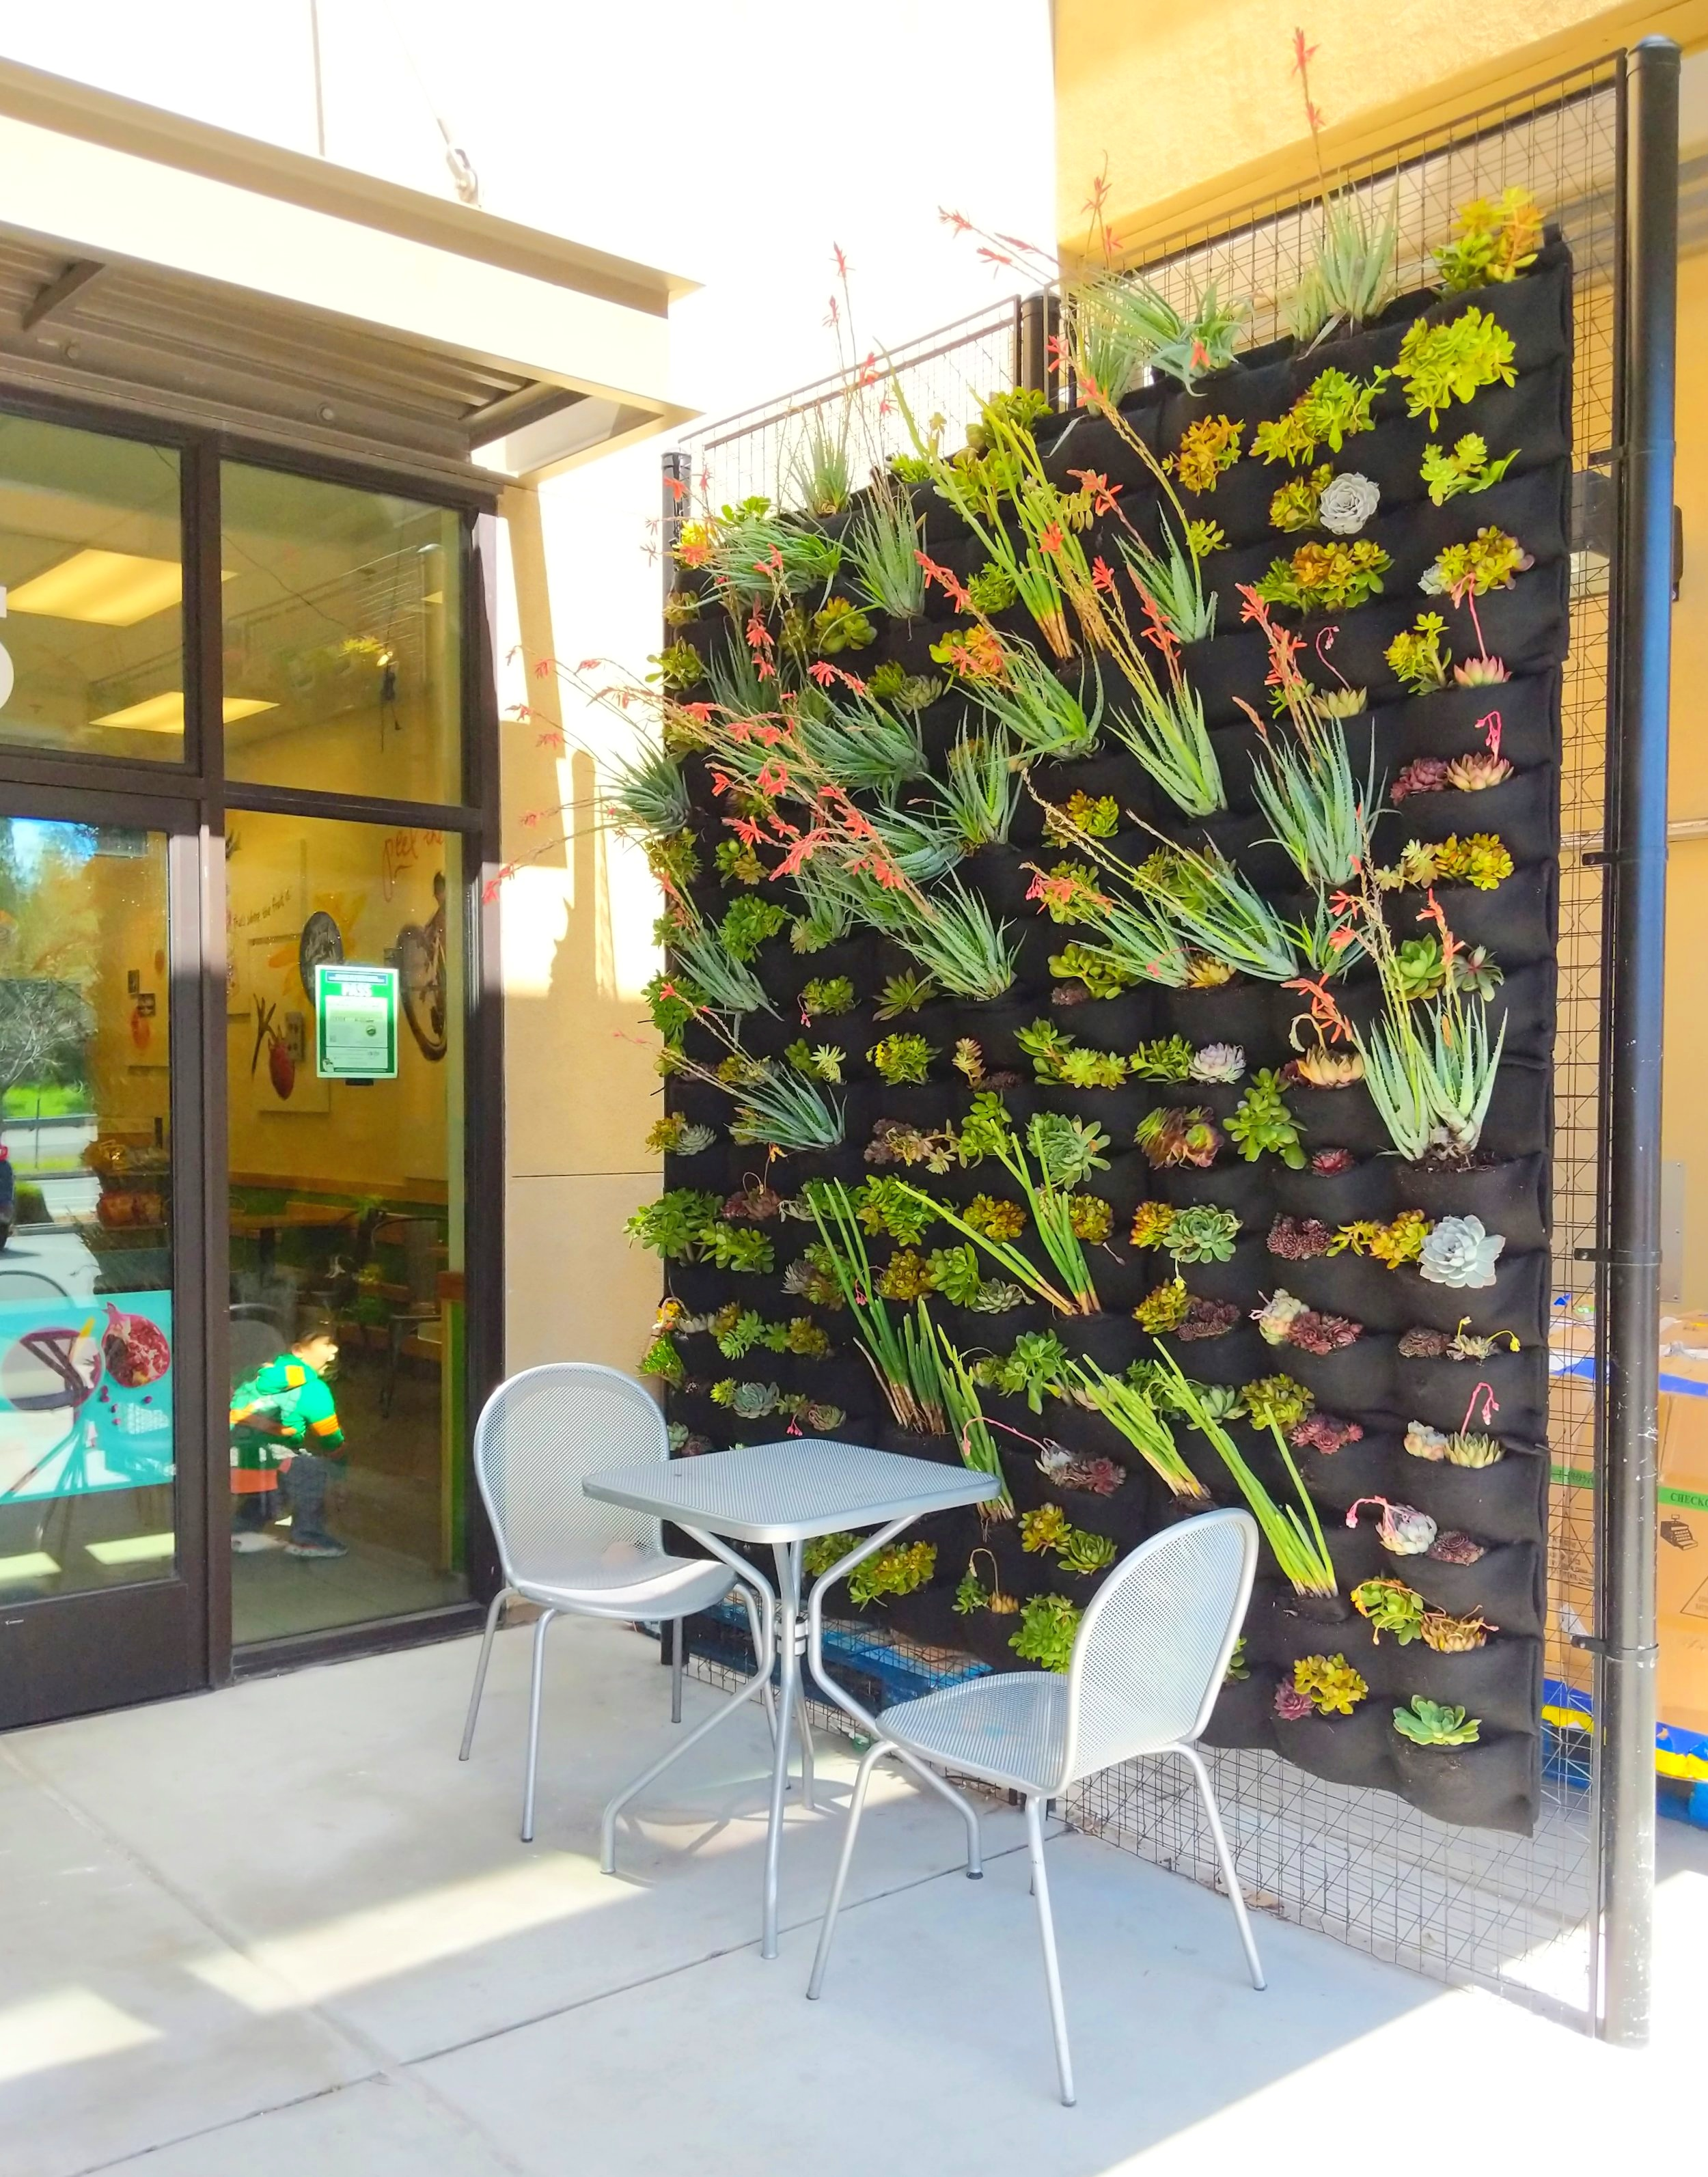 Florafelt Pocket Panel living wall by Hannah Construction for Jamba Juice, Martinez.